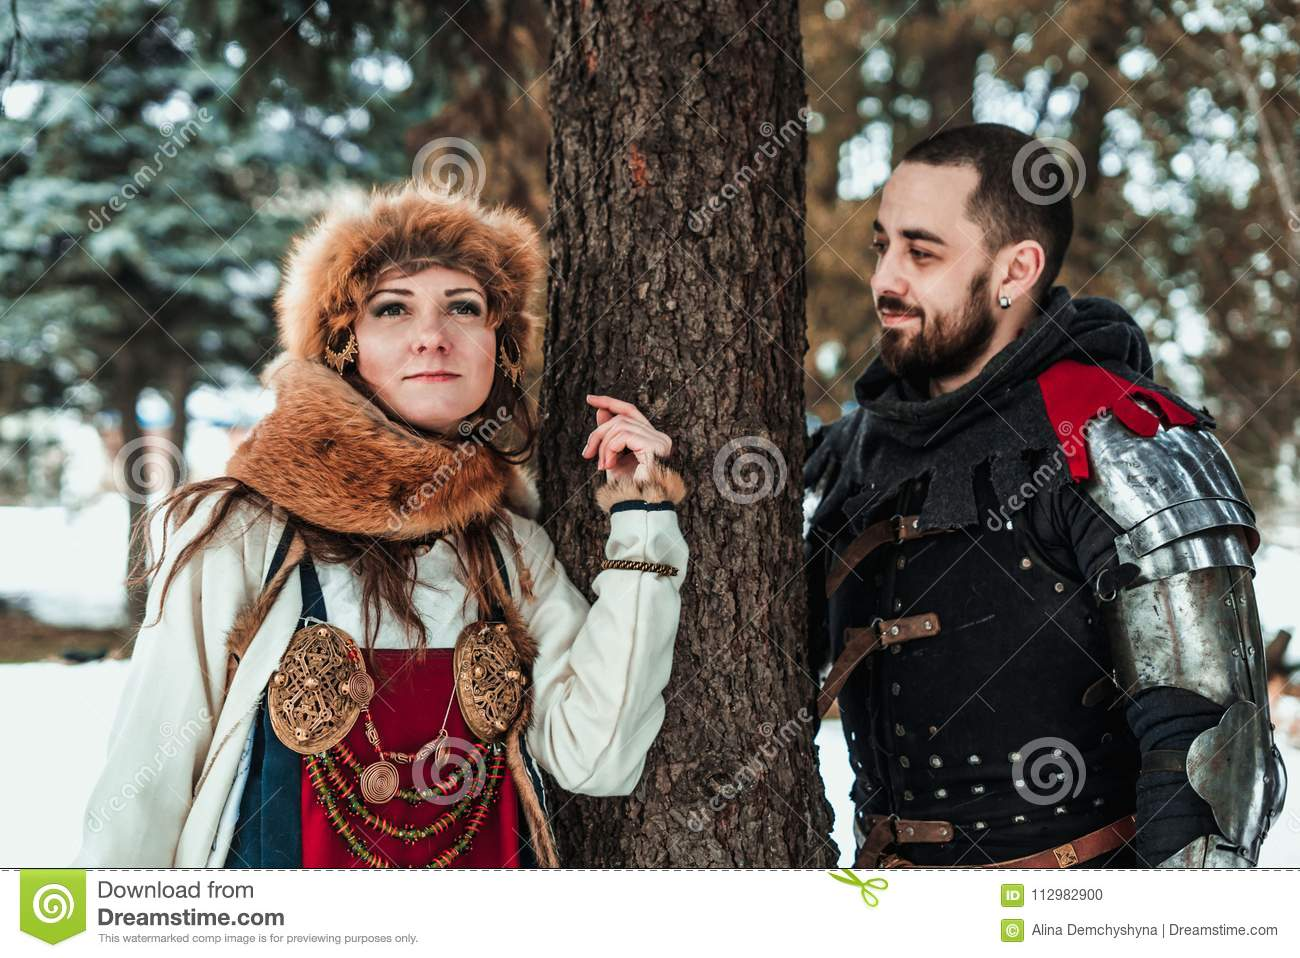 A man and a woman in historical costumes stand near a tree